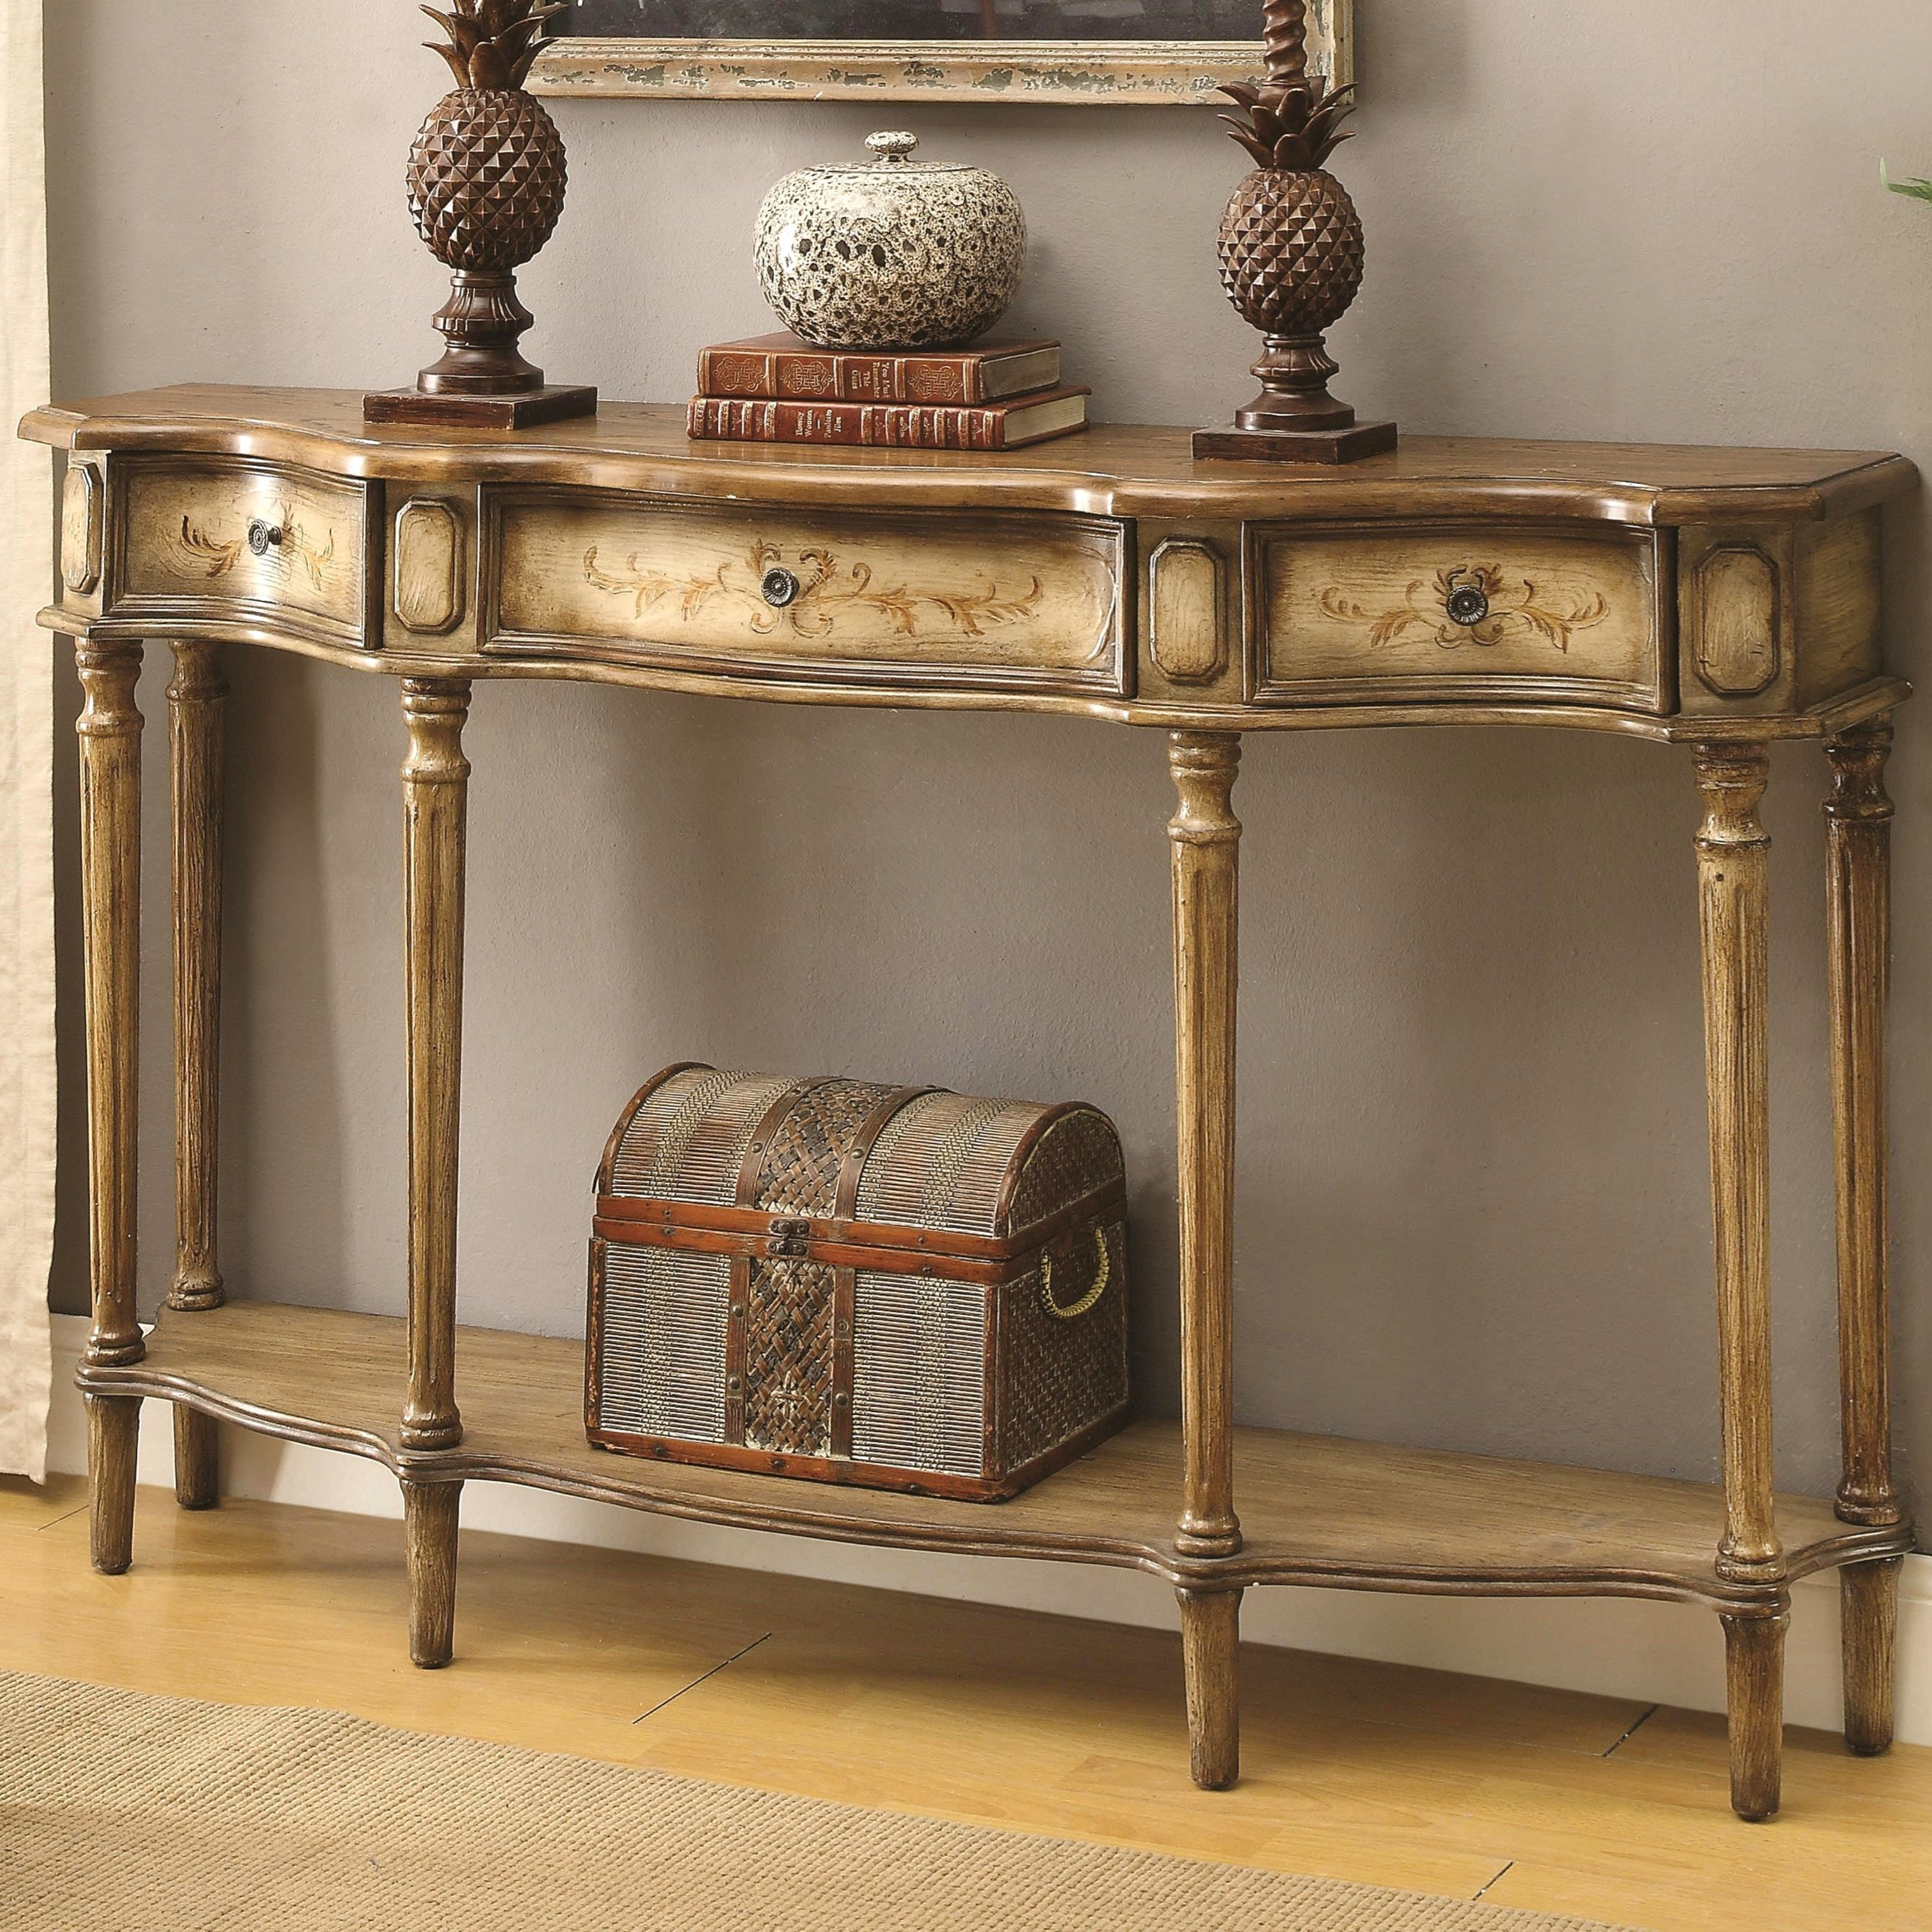 Milgrome Antique Painted Console Table (Console Table), B...